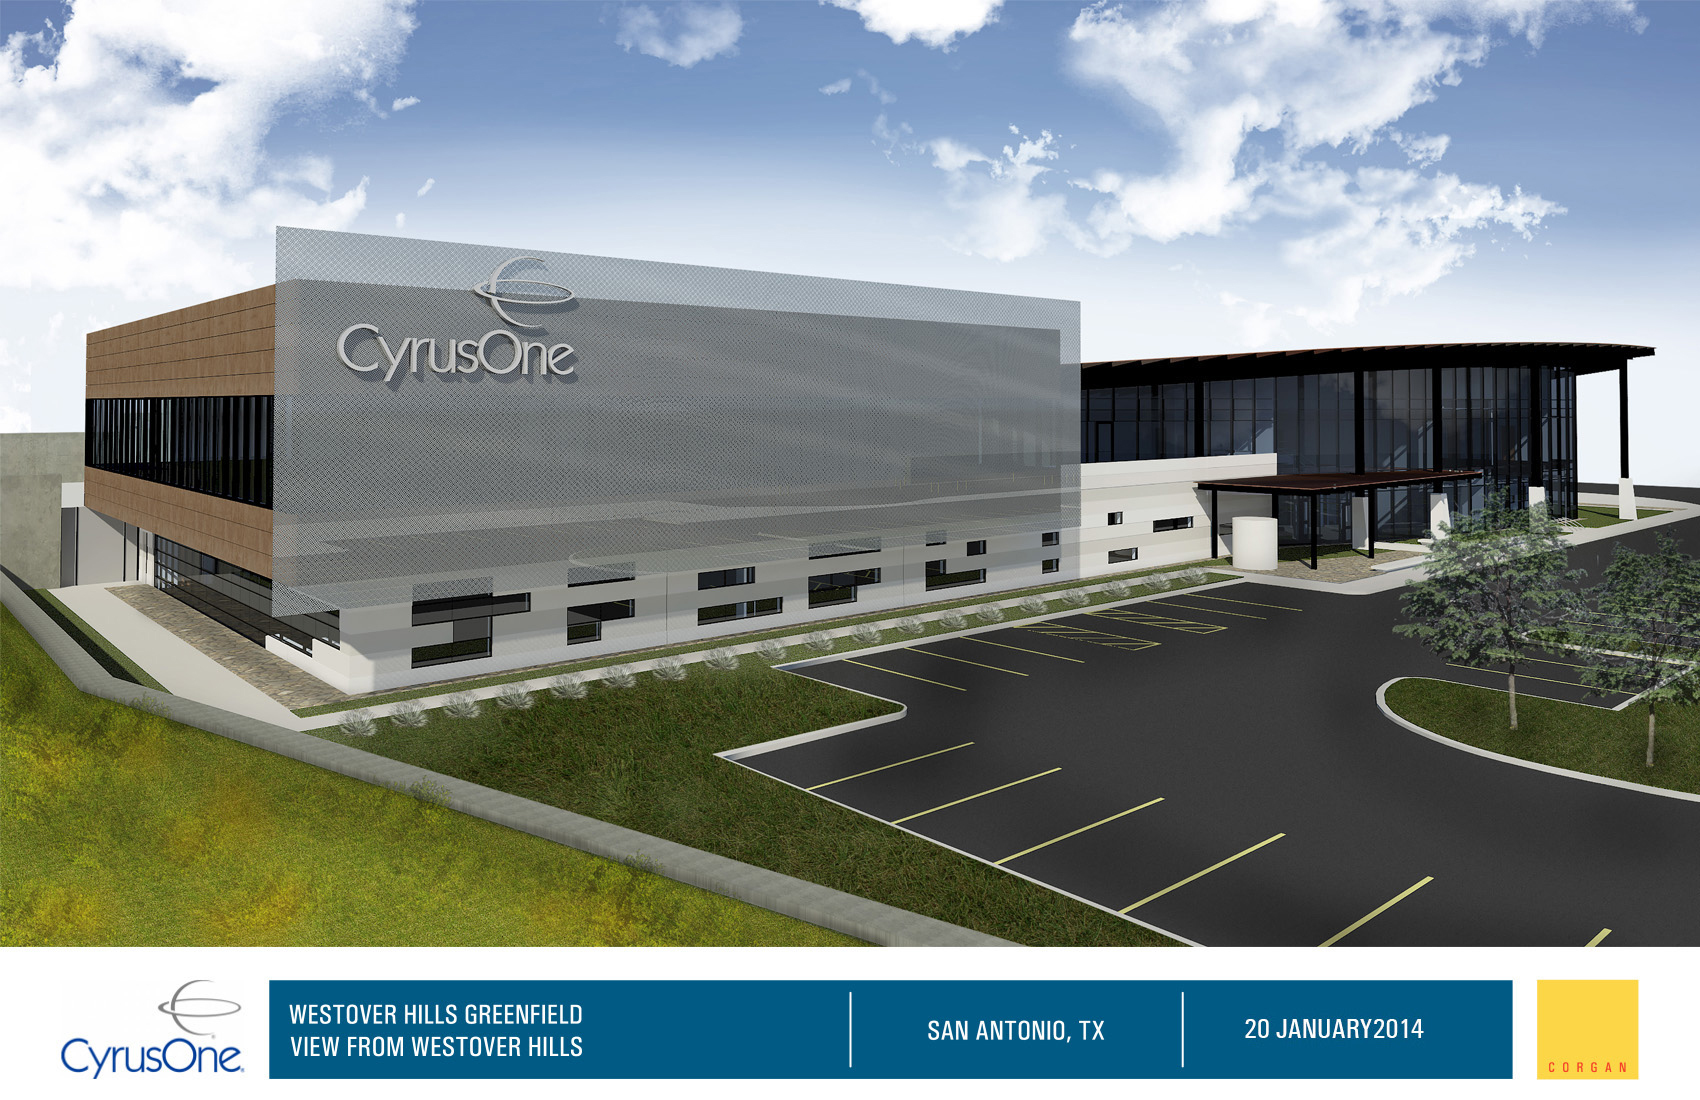 hight resolution of global data center services provider cyrusone to host feb 13 ground breaking ceremony for second data center in san antonio business wire